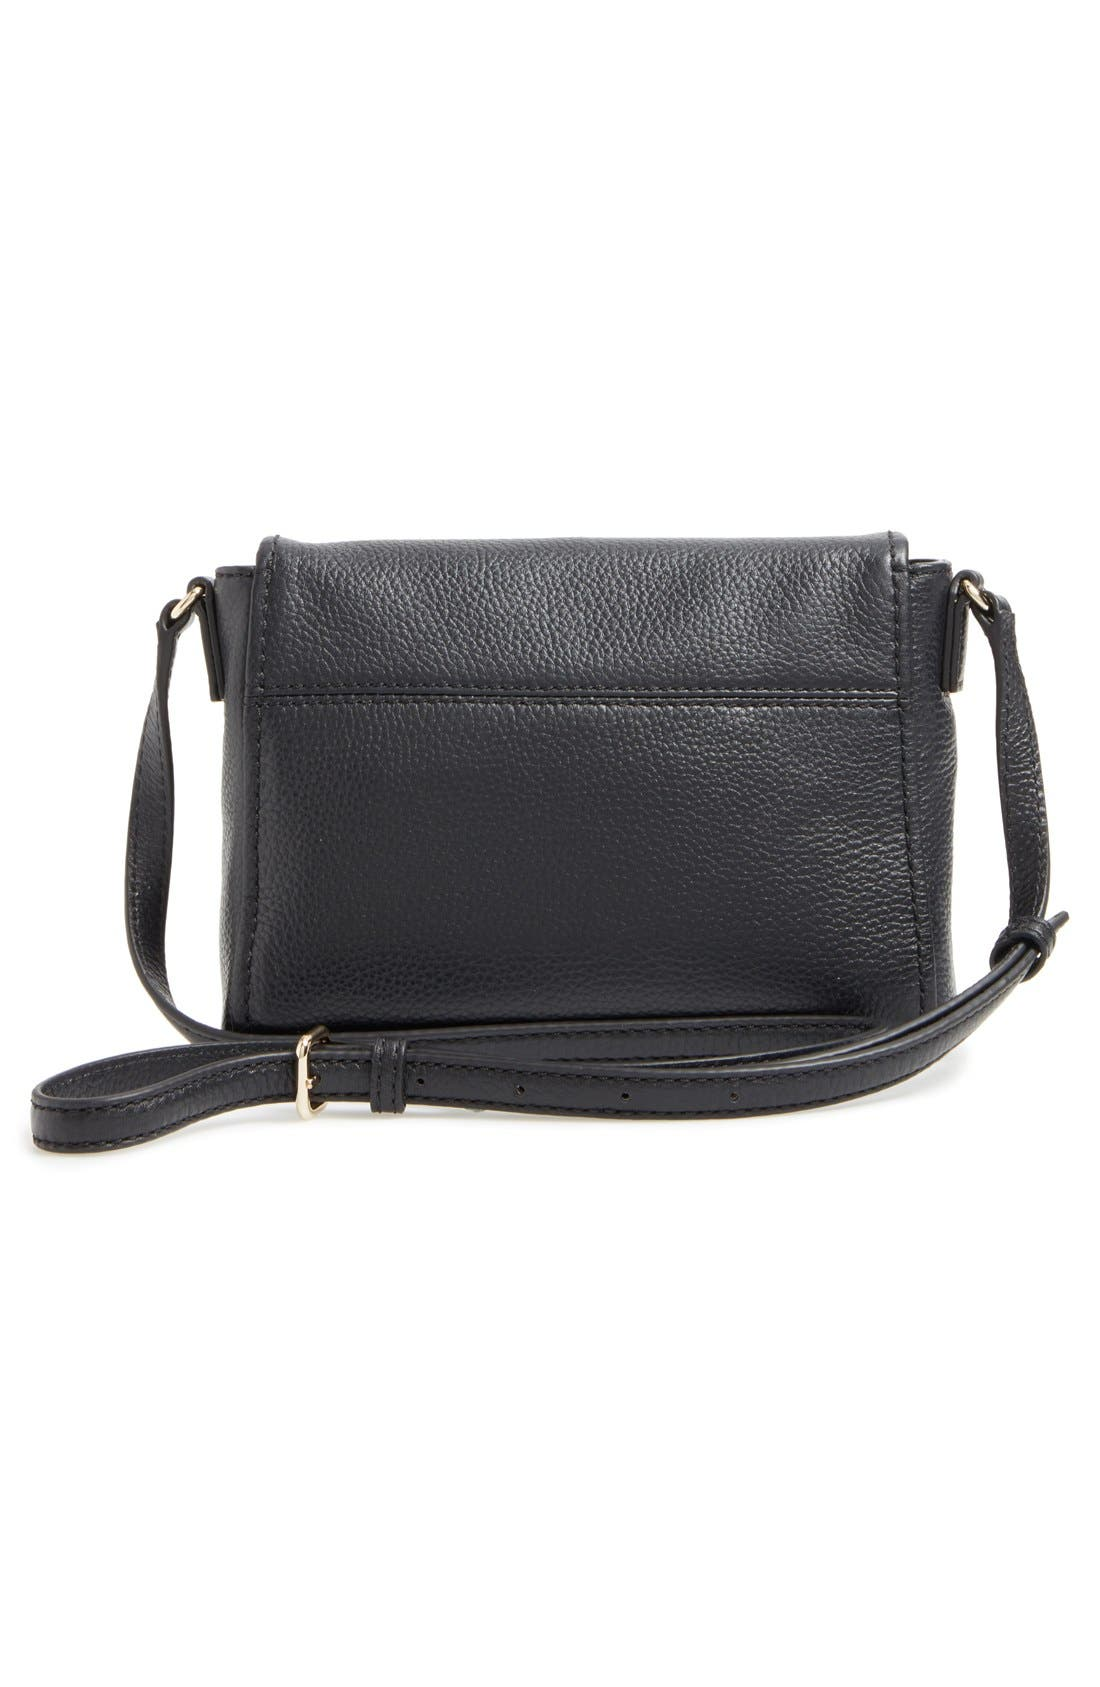 'cobble hill - mini toddy' leather crossbody bag,                             Alternate thumbnail 3, color,                             001